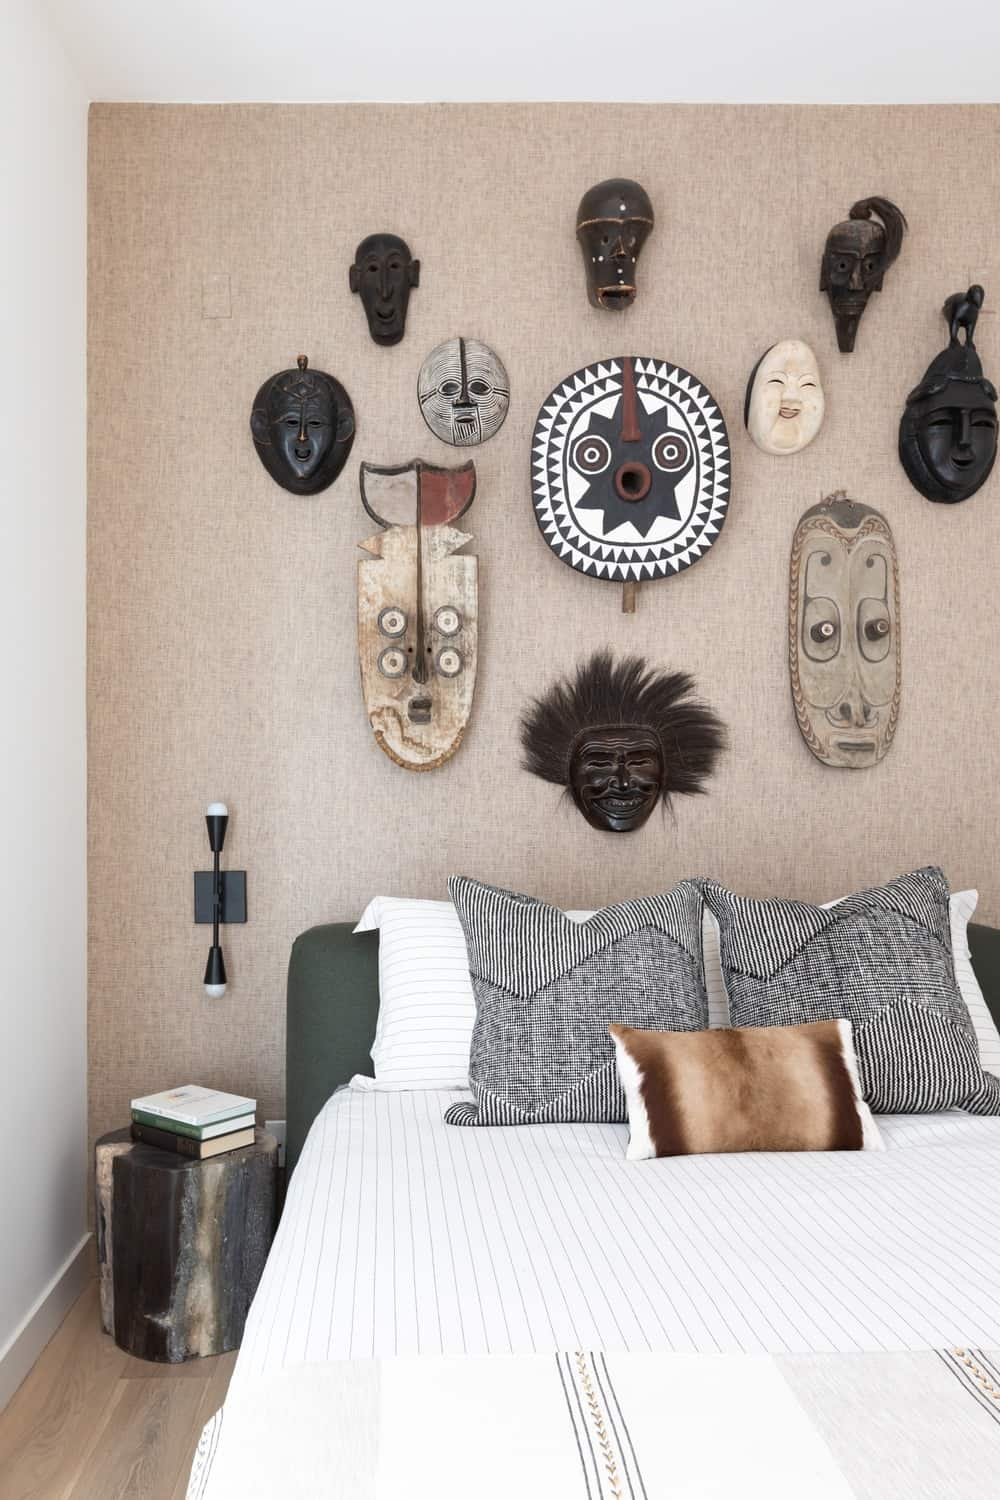 This is a closer look at the light wood wall behind the headboard of the bed. This is filled with various wall-mounted decorative tribal masks that give character to the simple tones of the bedroom.